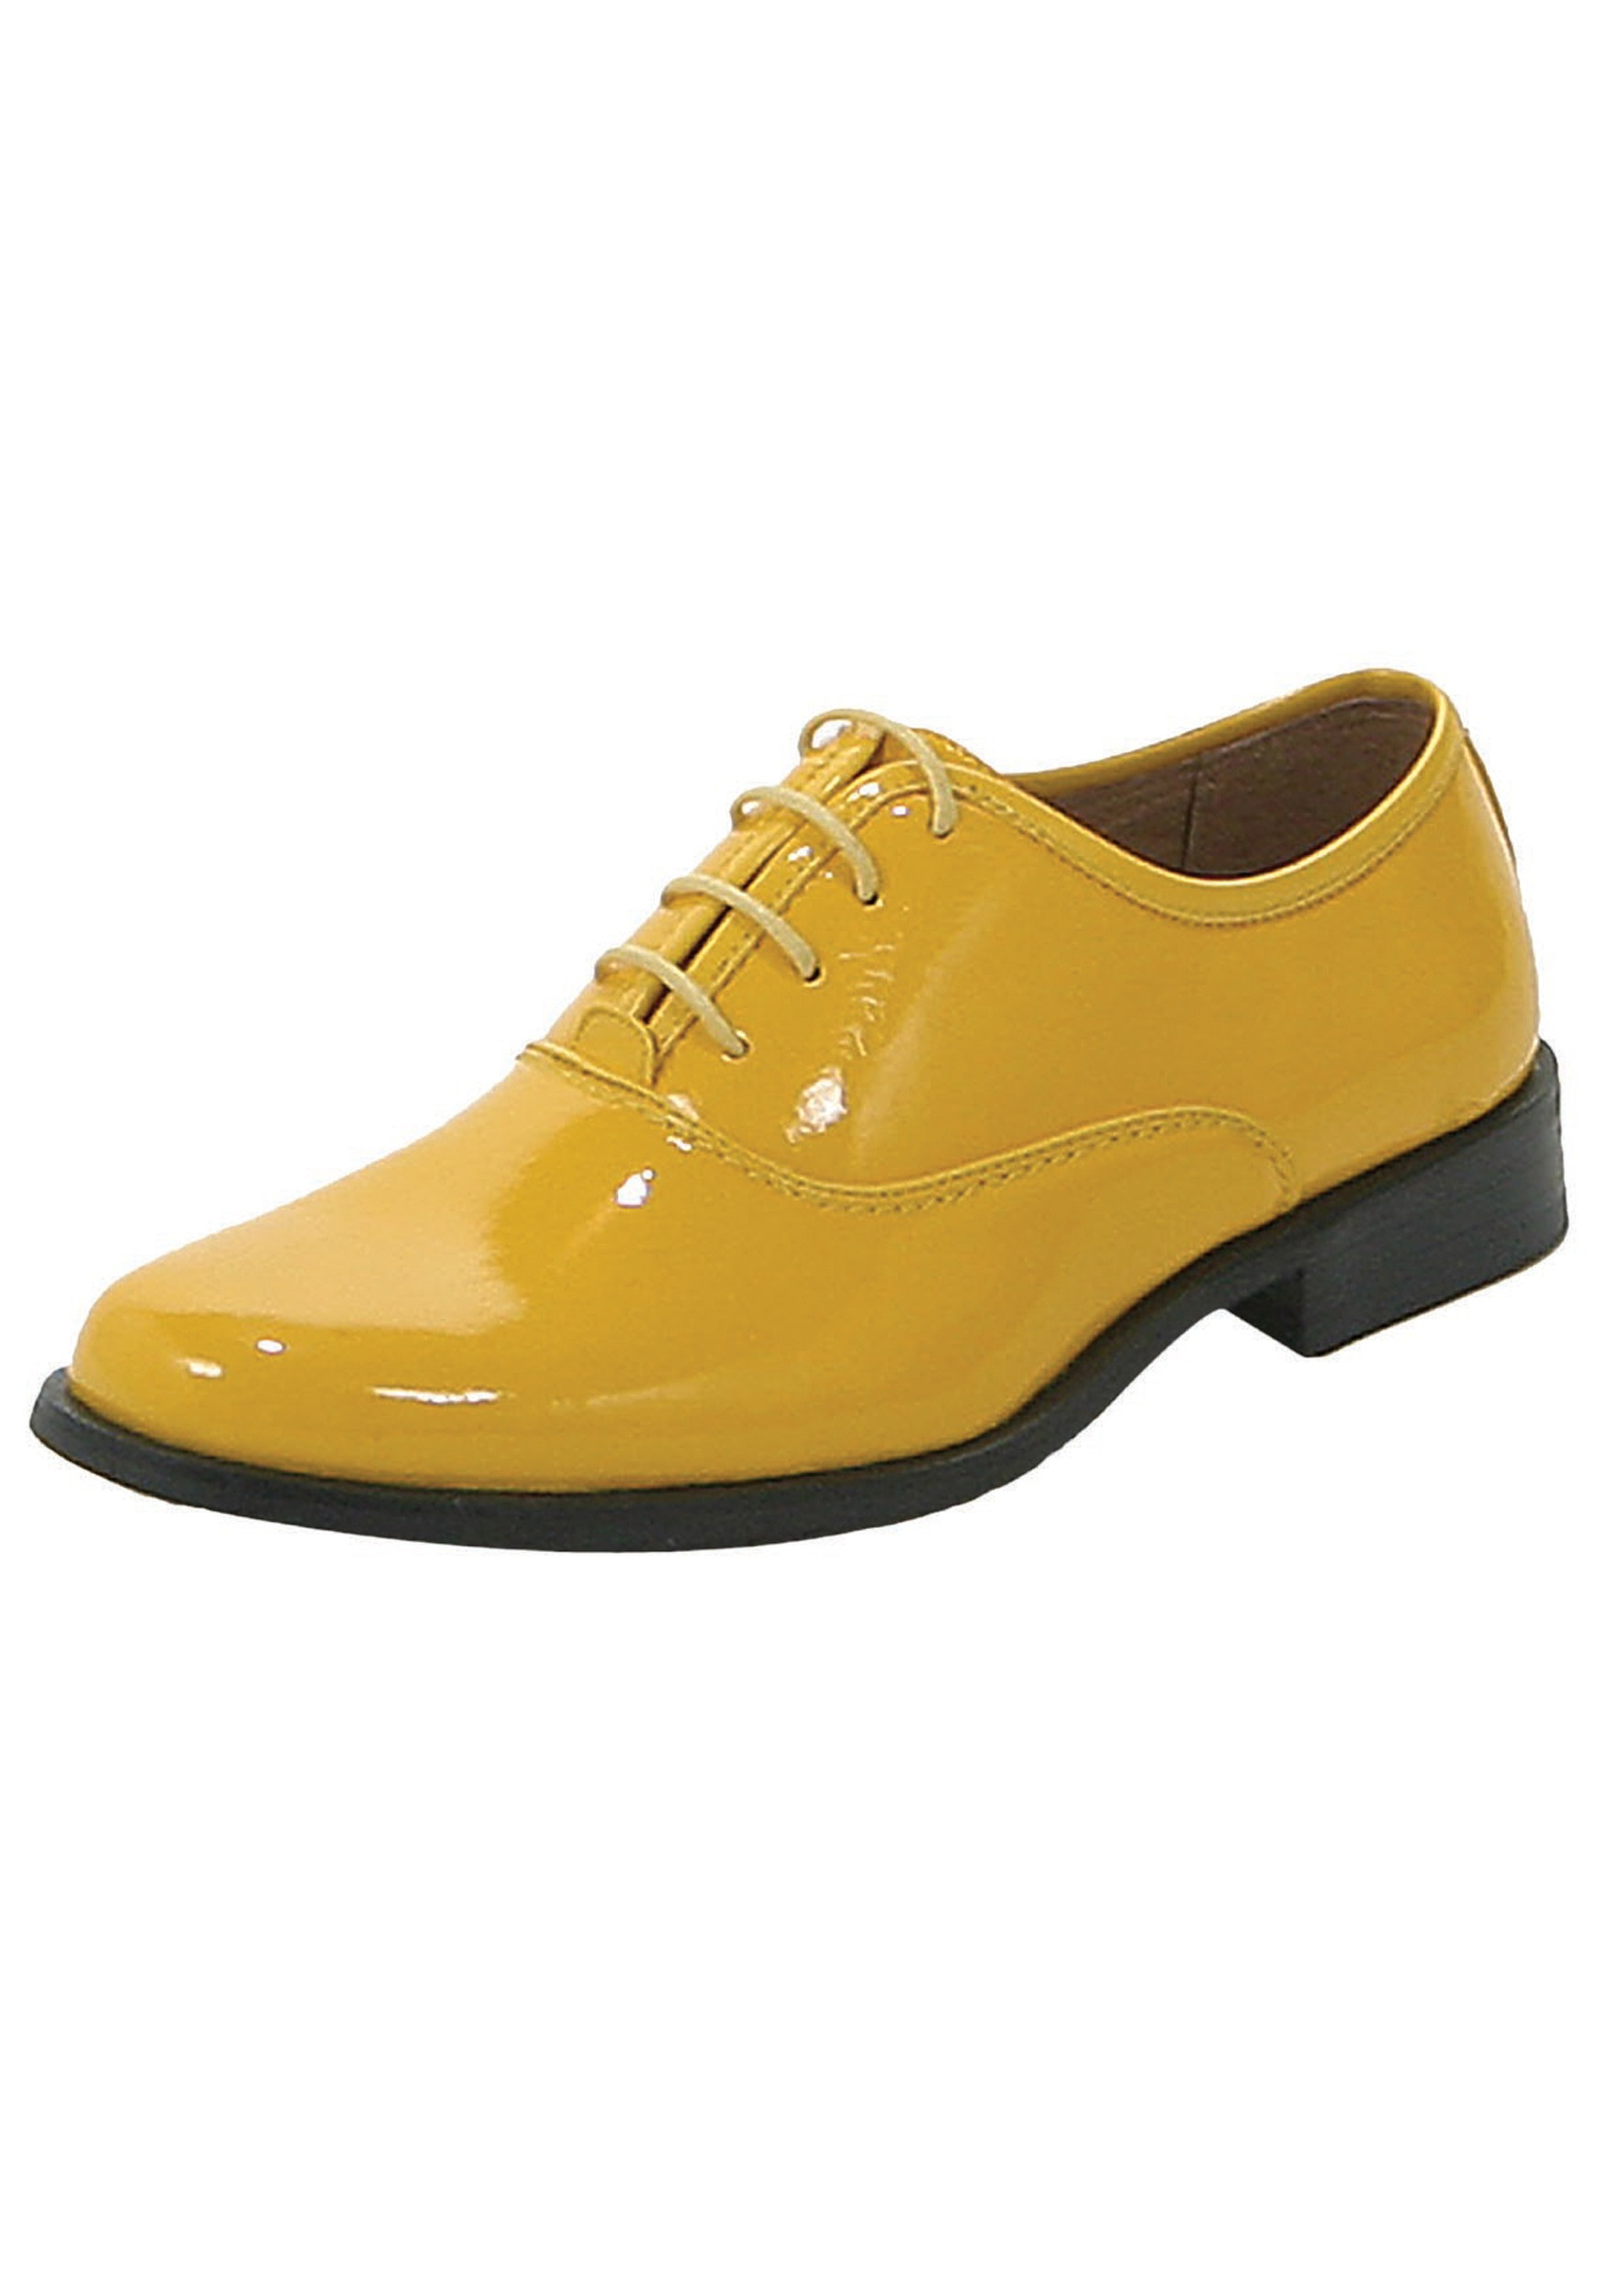 Where To Buy Small Size Mens Shoes